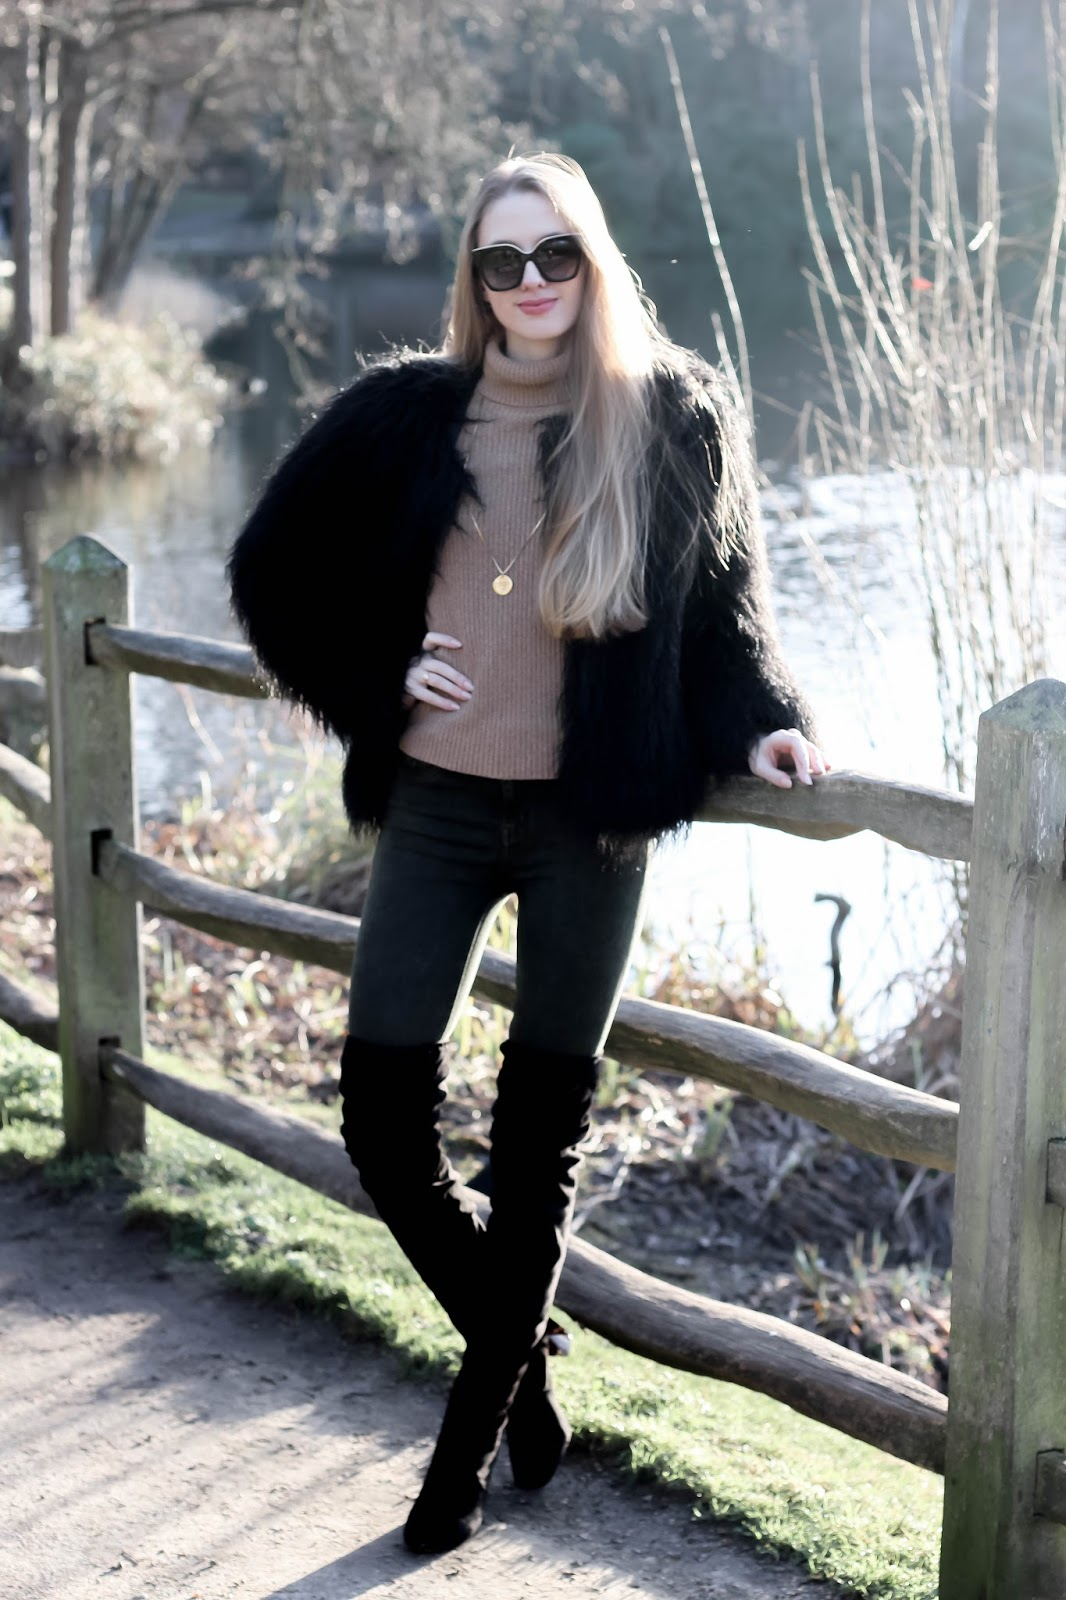 Fashion Blogger Guide to Wearing Neutrals in Winter